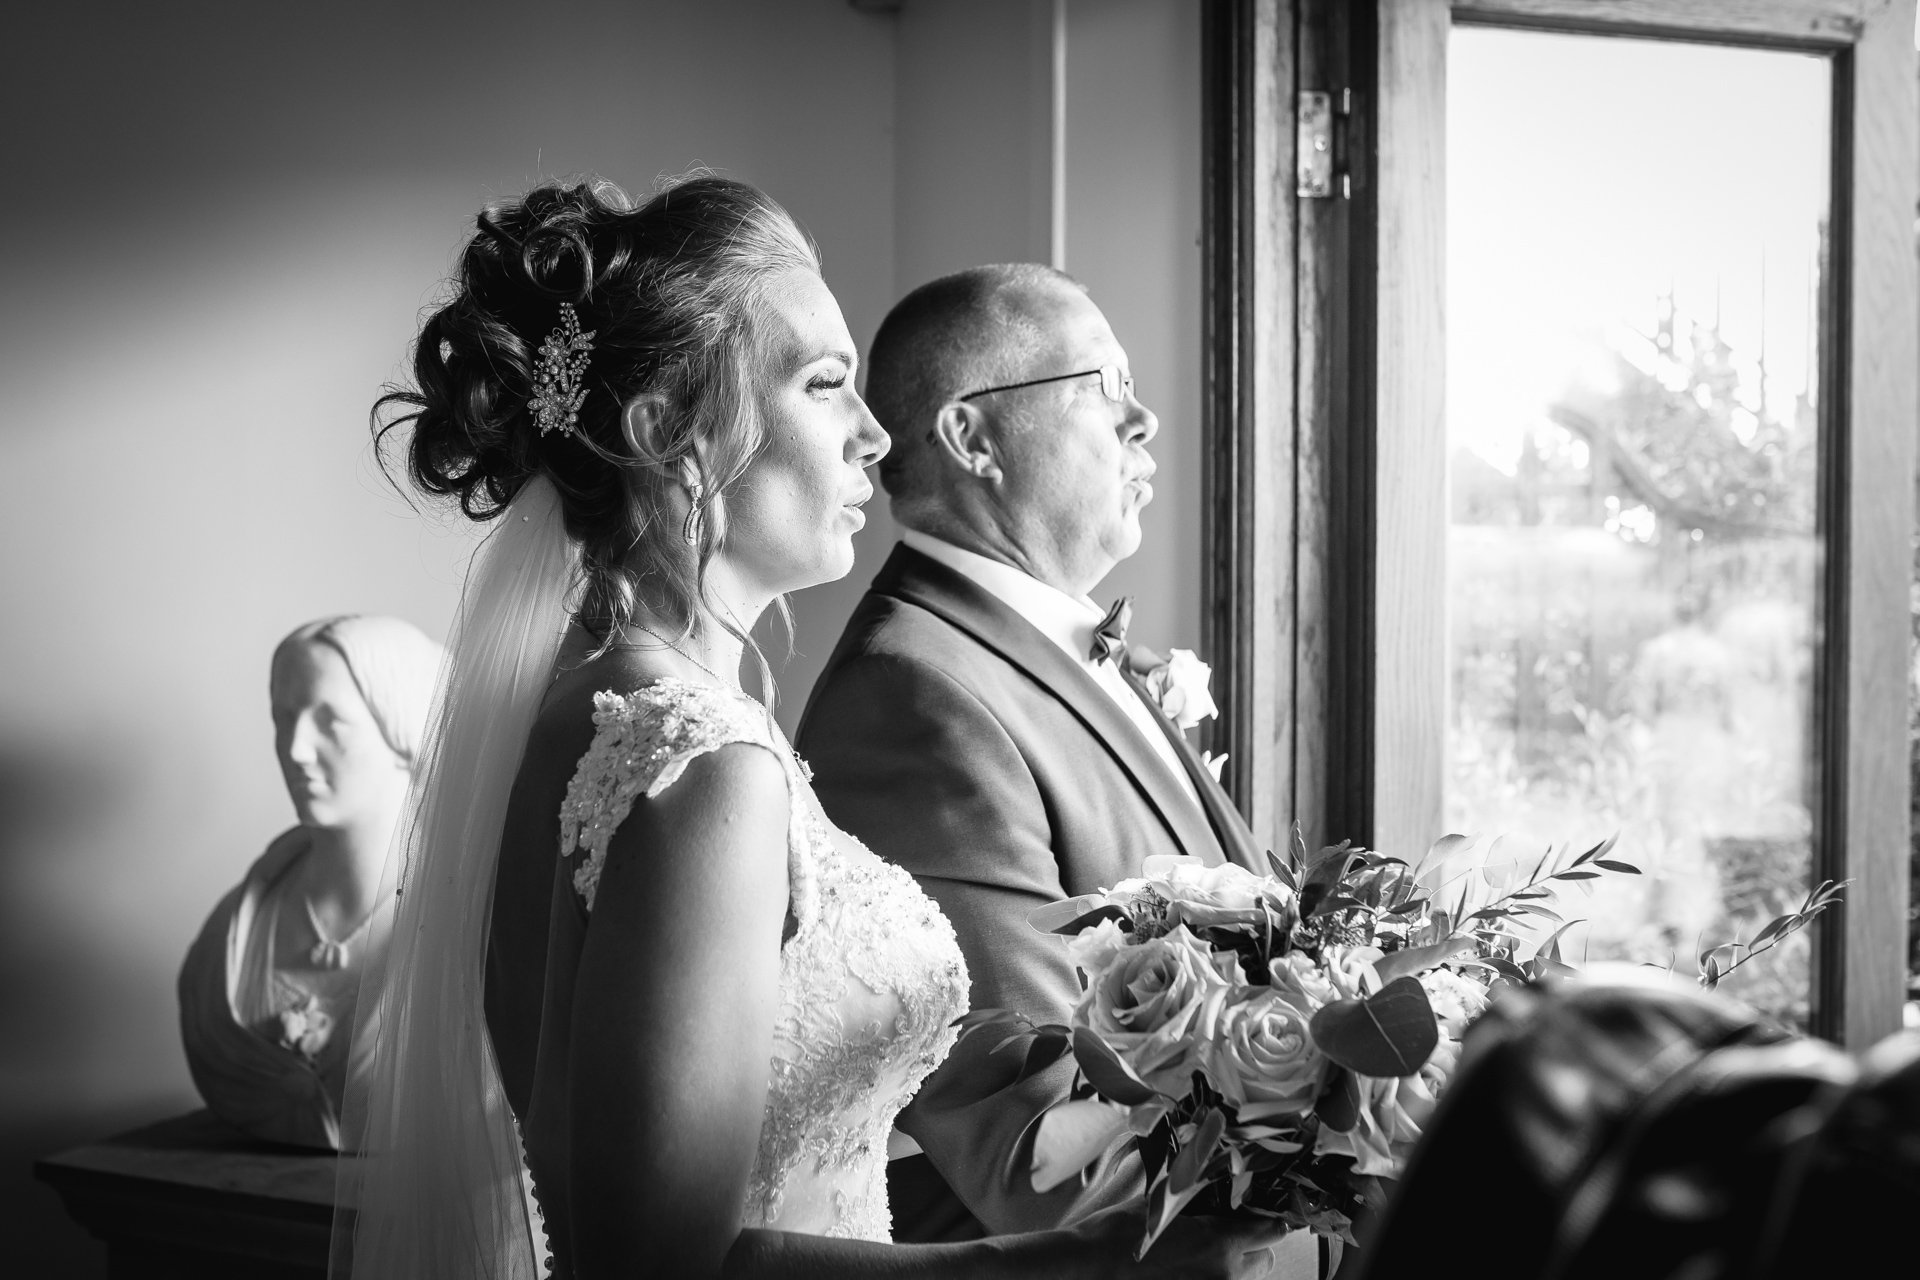 Bride and her father taking a breath before walking down the aisle